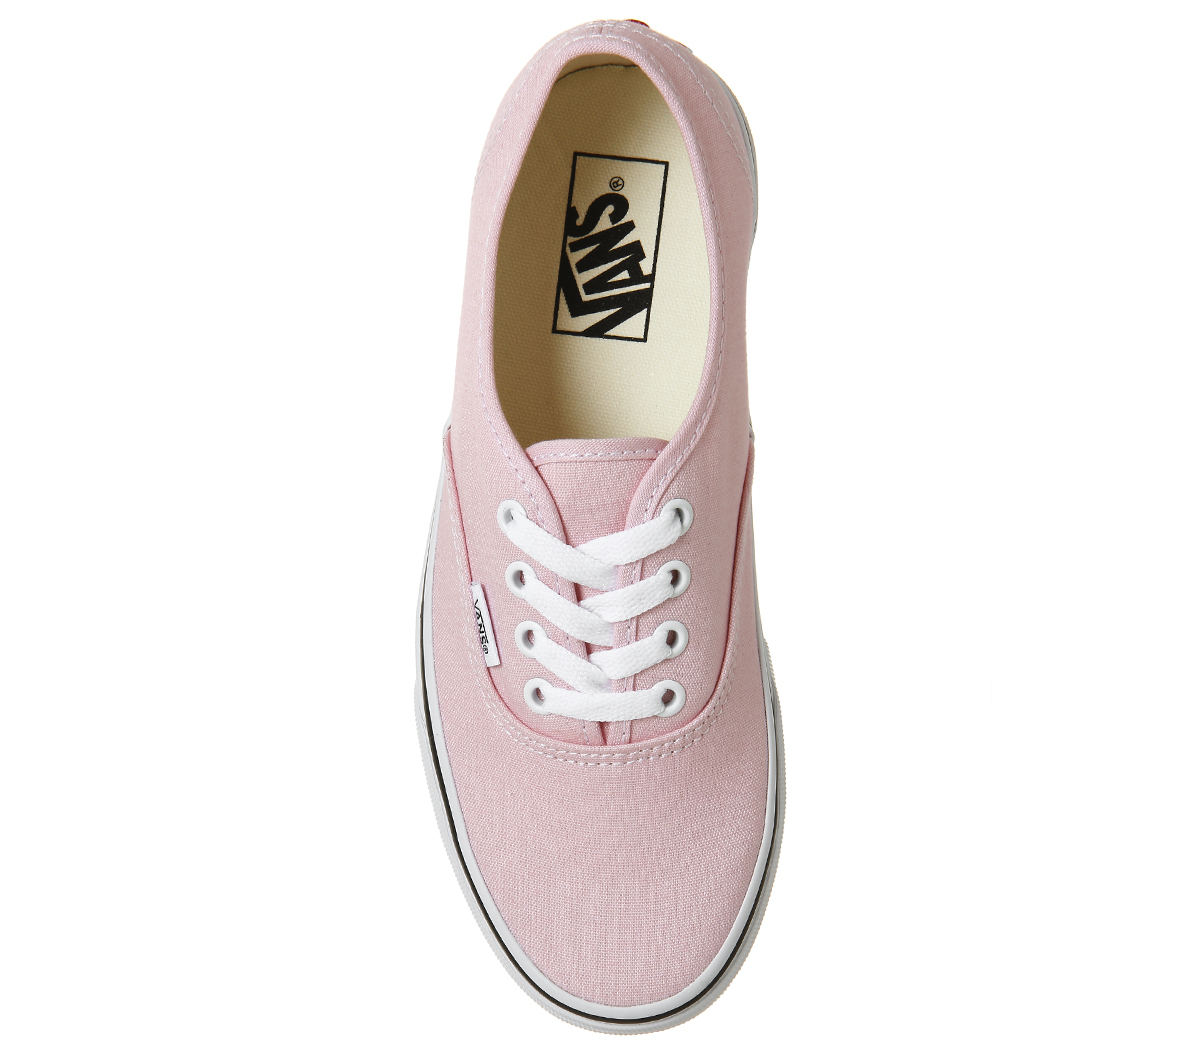 c76c878387 Womens Vans Authentic Trainers CHALK PINK TRUE WHITE Trainers Shoes ...